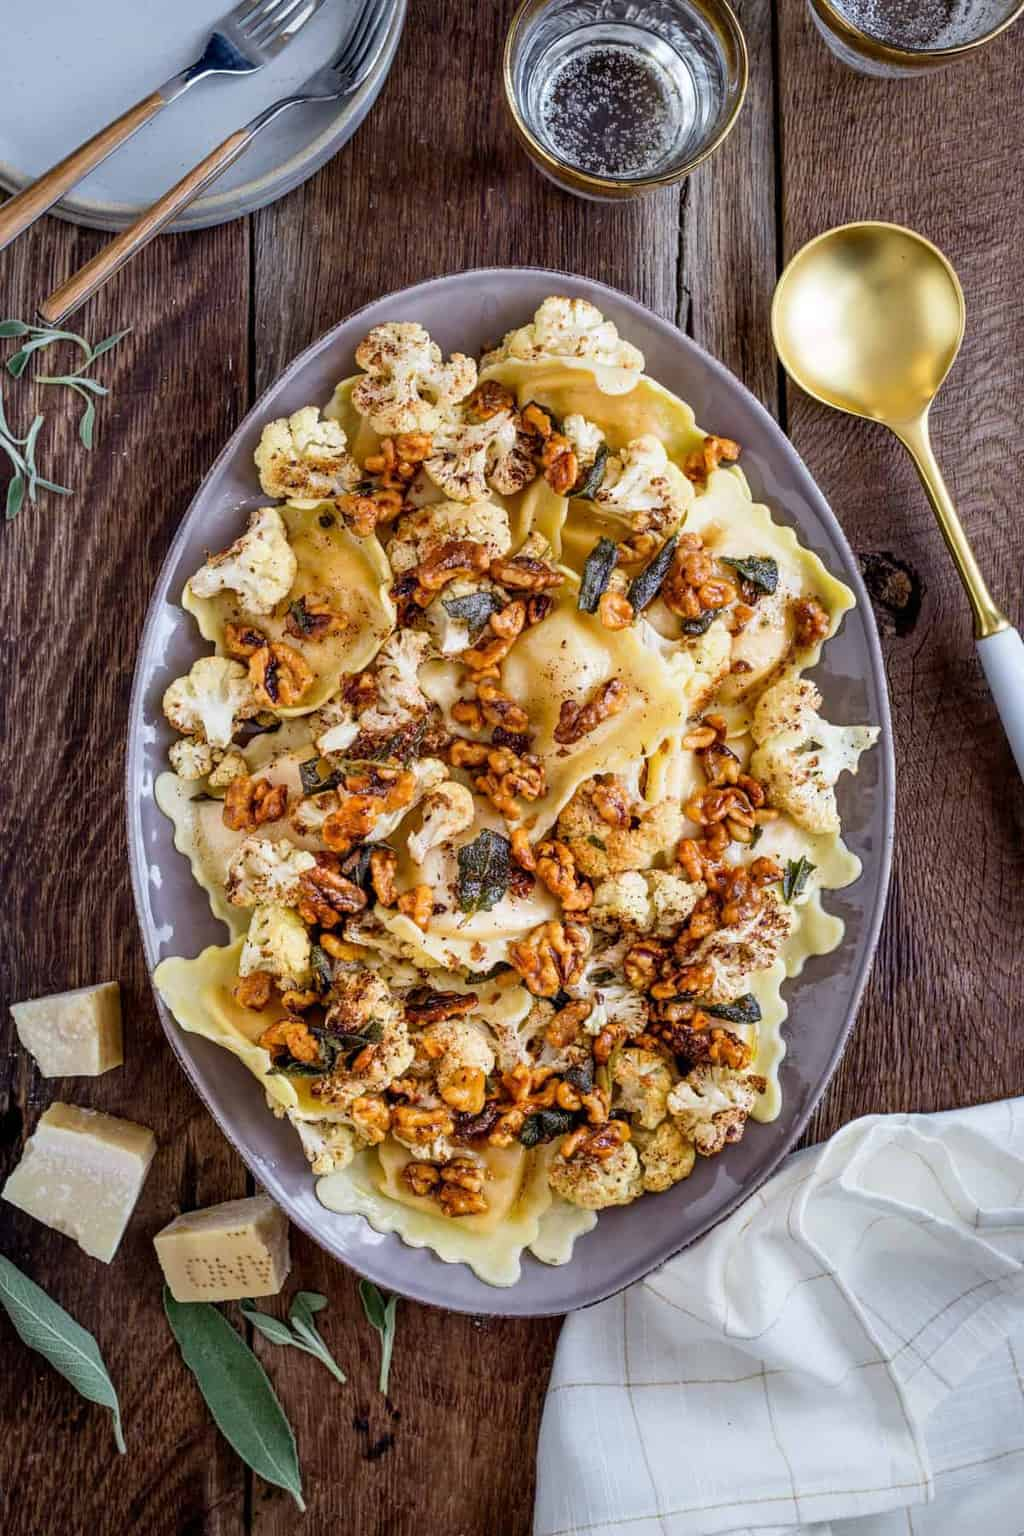 Pin On Health: Butternut Squash Ravioli With Roasted Cauliflower + Brown